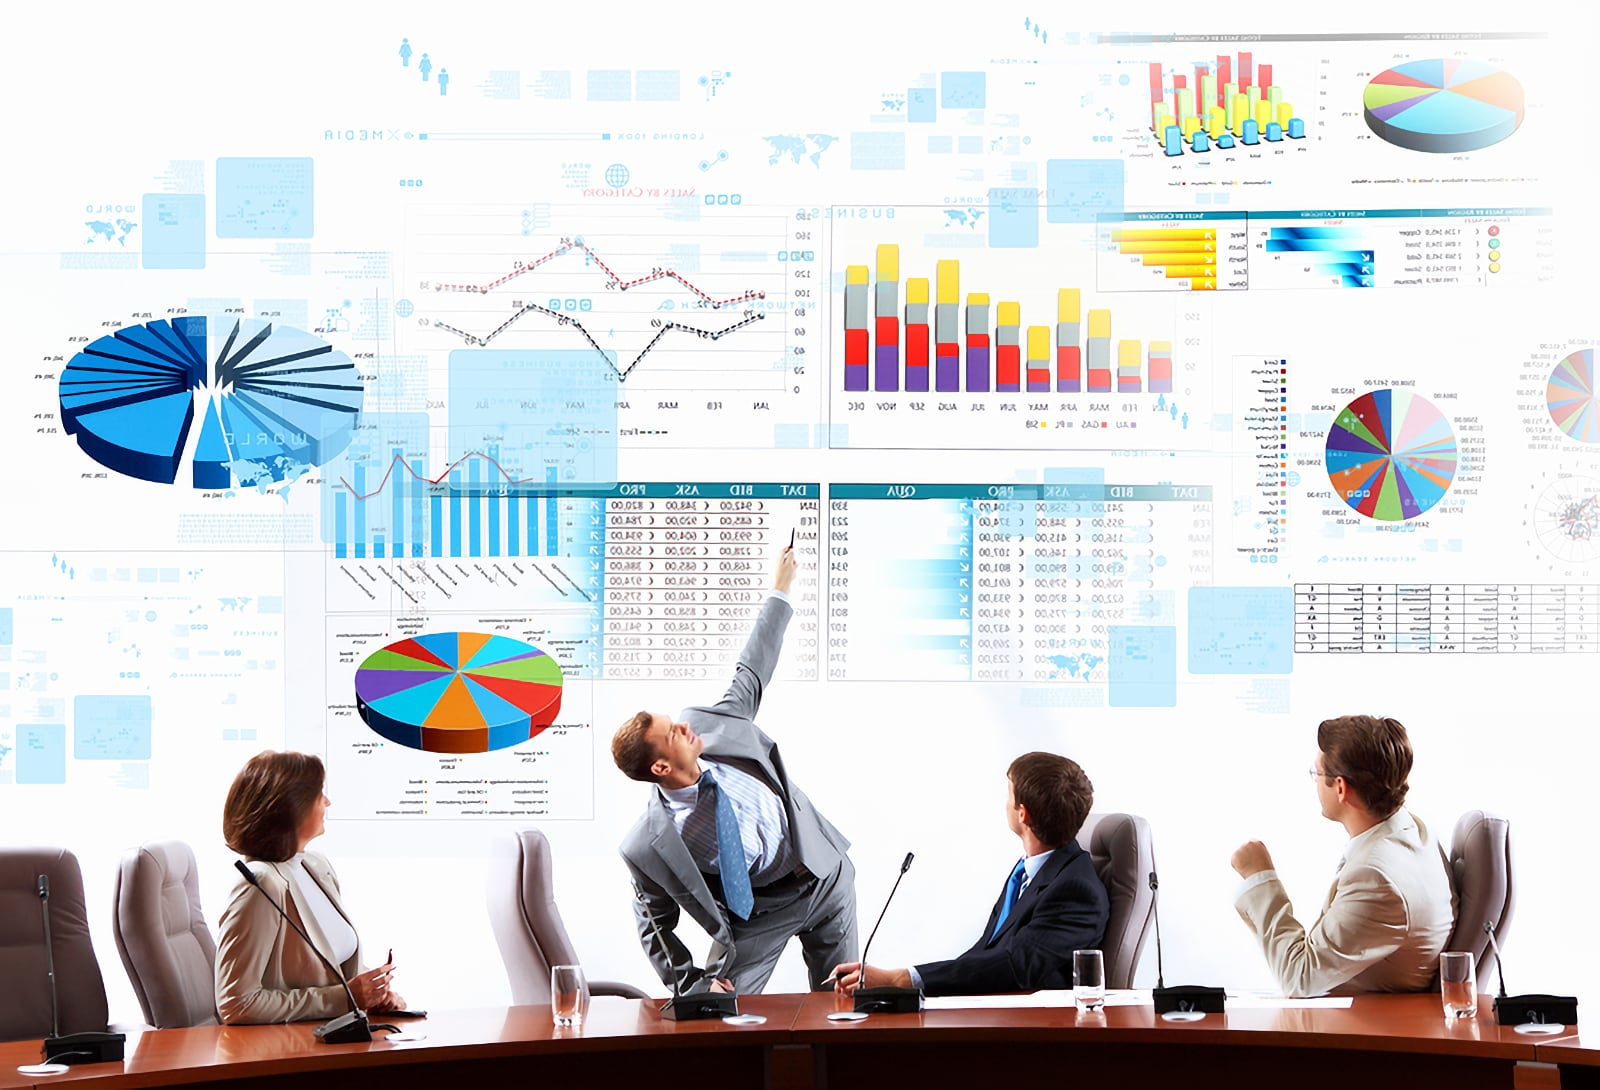 Concept photo image showing 3 smart business men and 1 business woman, all seated, looking up at wall-sized screen made up of charts, graphs, and spreadsheet data files